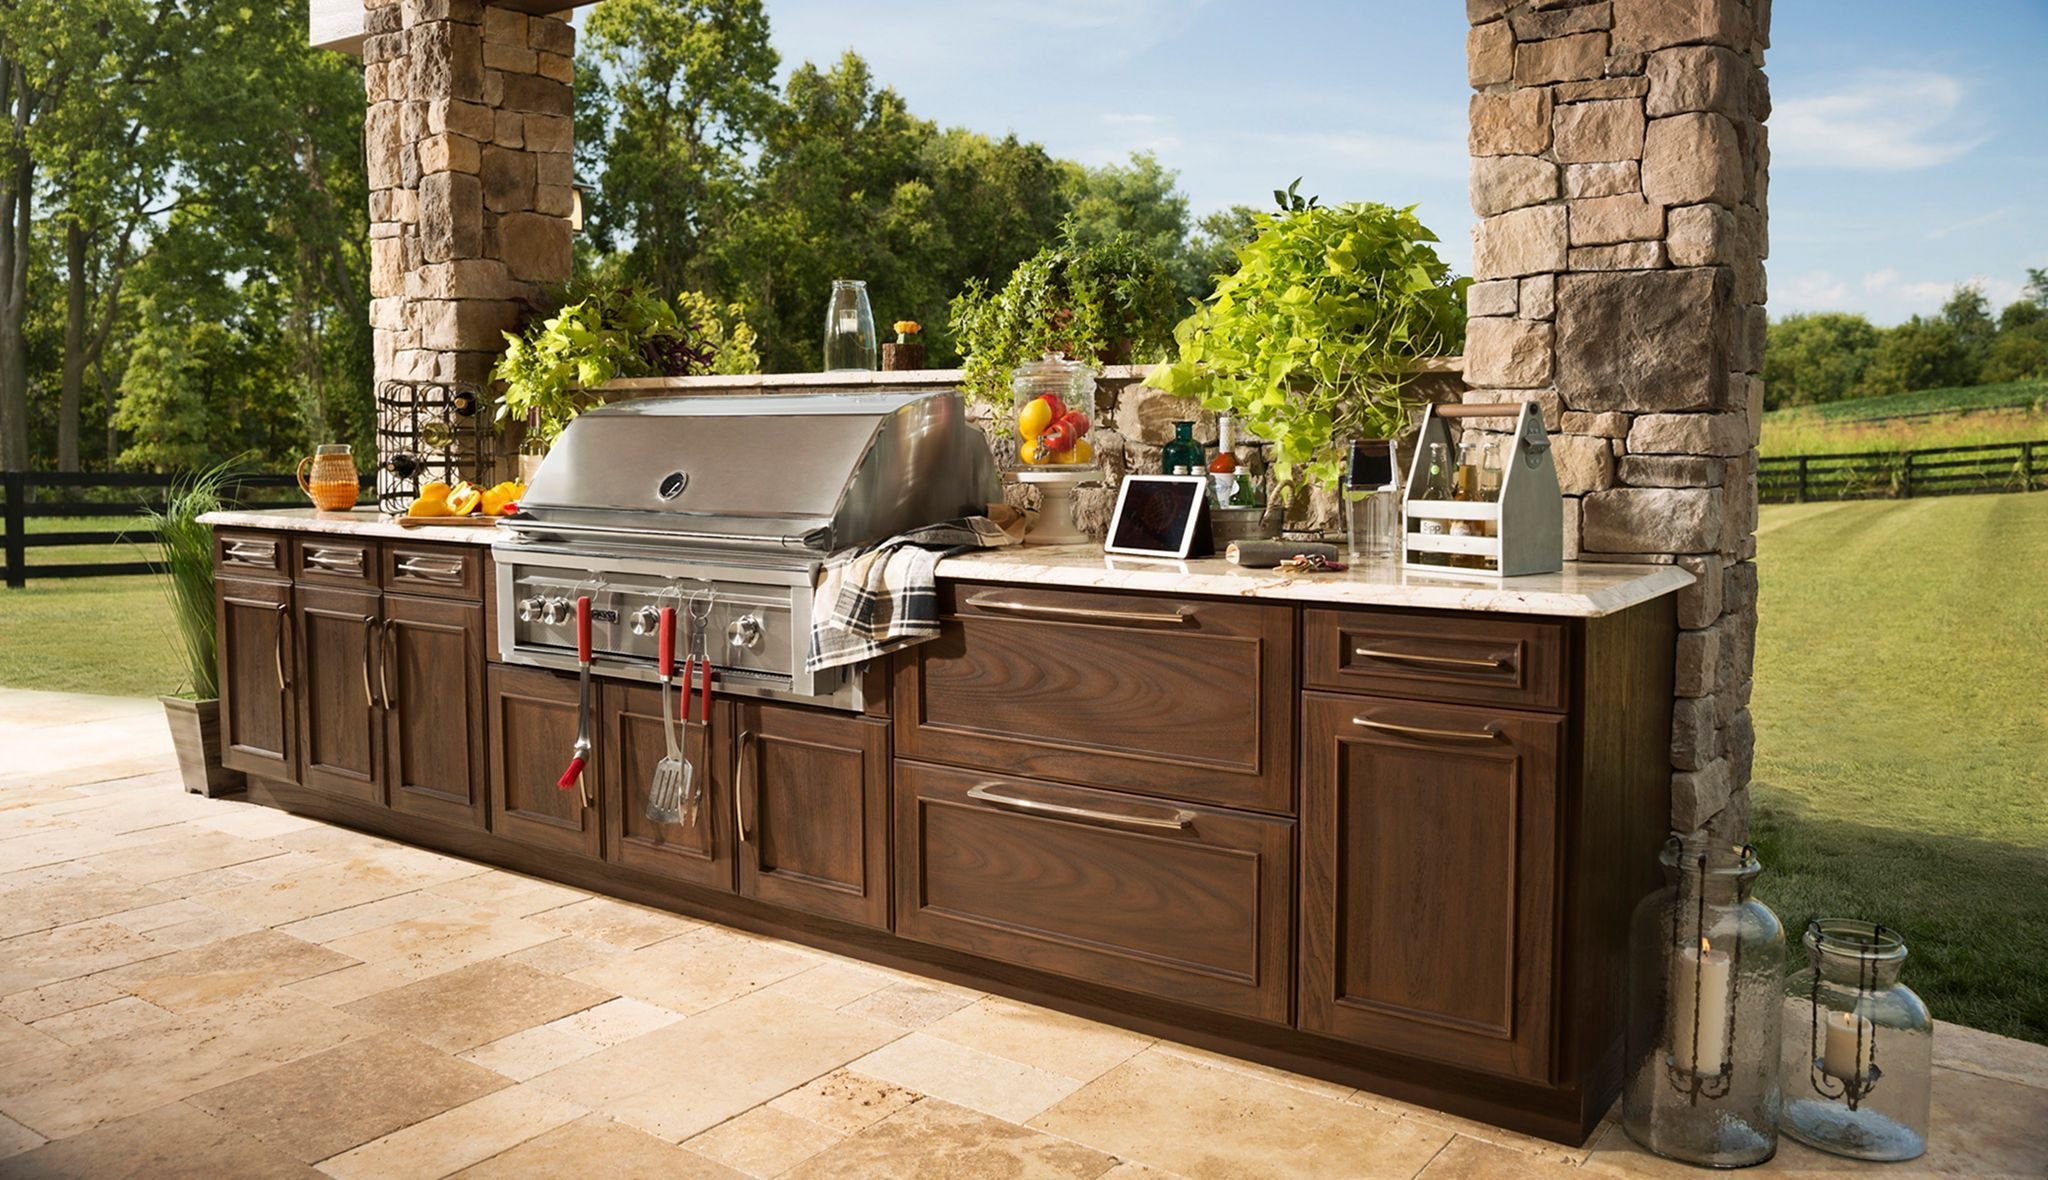 15 Best Outdoor Kitchen That Will Make Your Outside Area More Exciting Outdoor Kitchen Cabinets Outdoor Kitchen Design Outdoor Kitchen